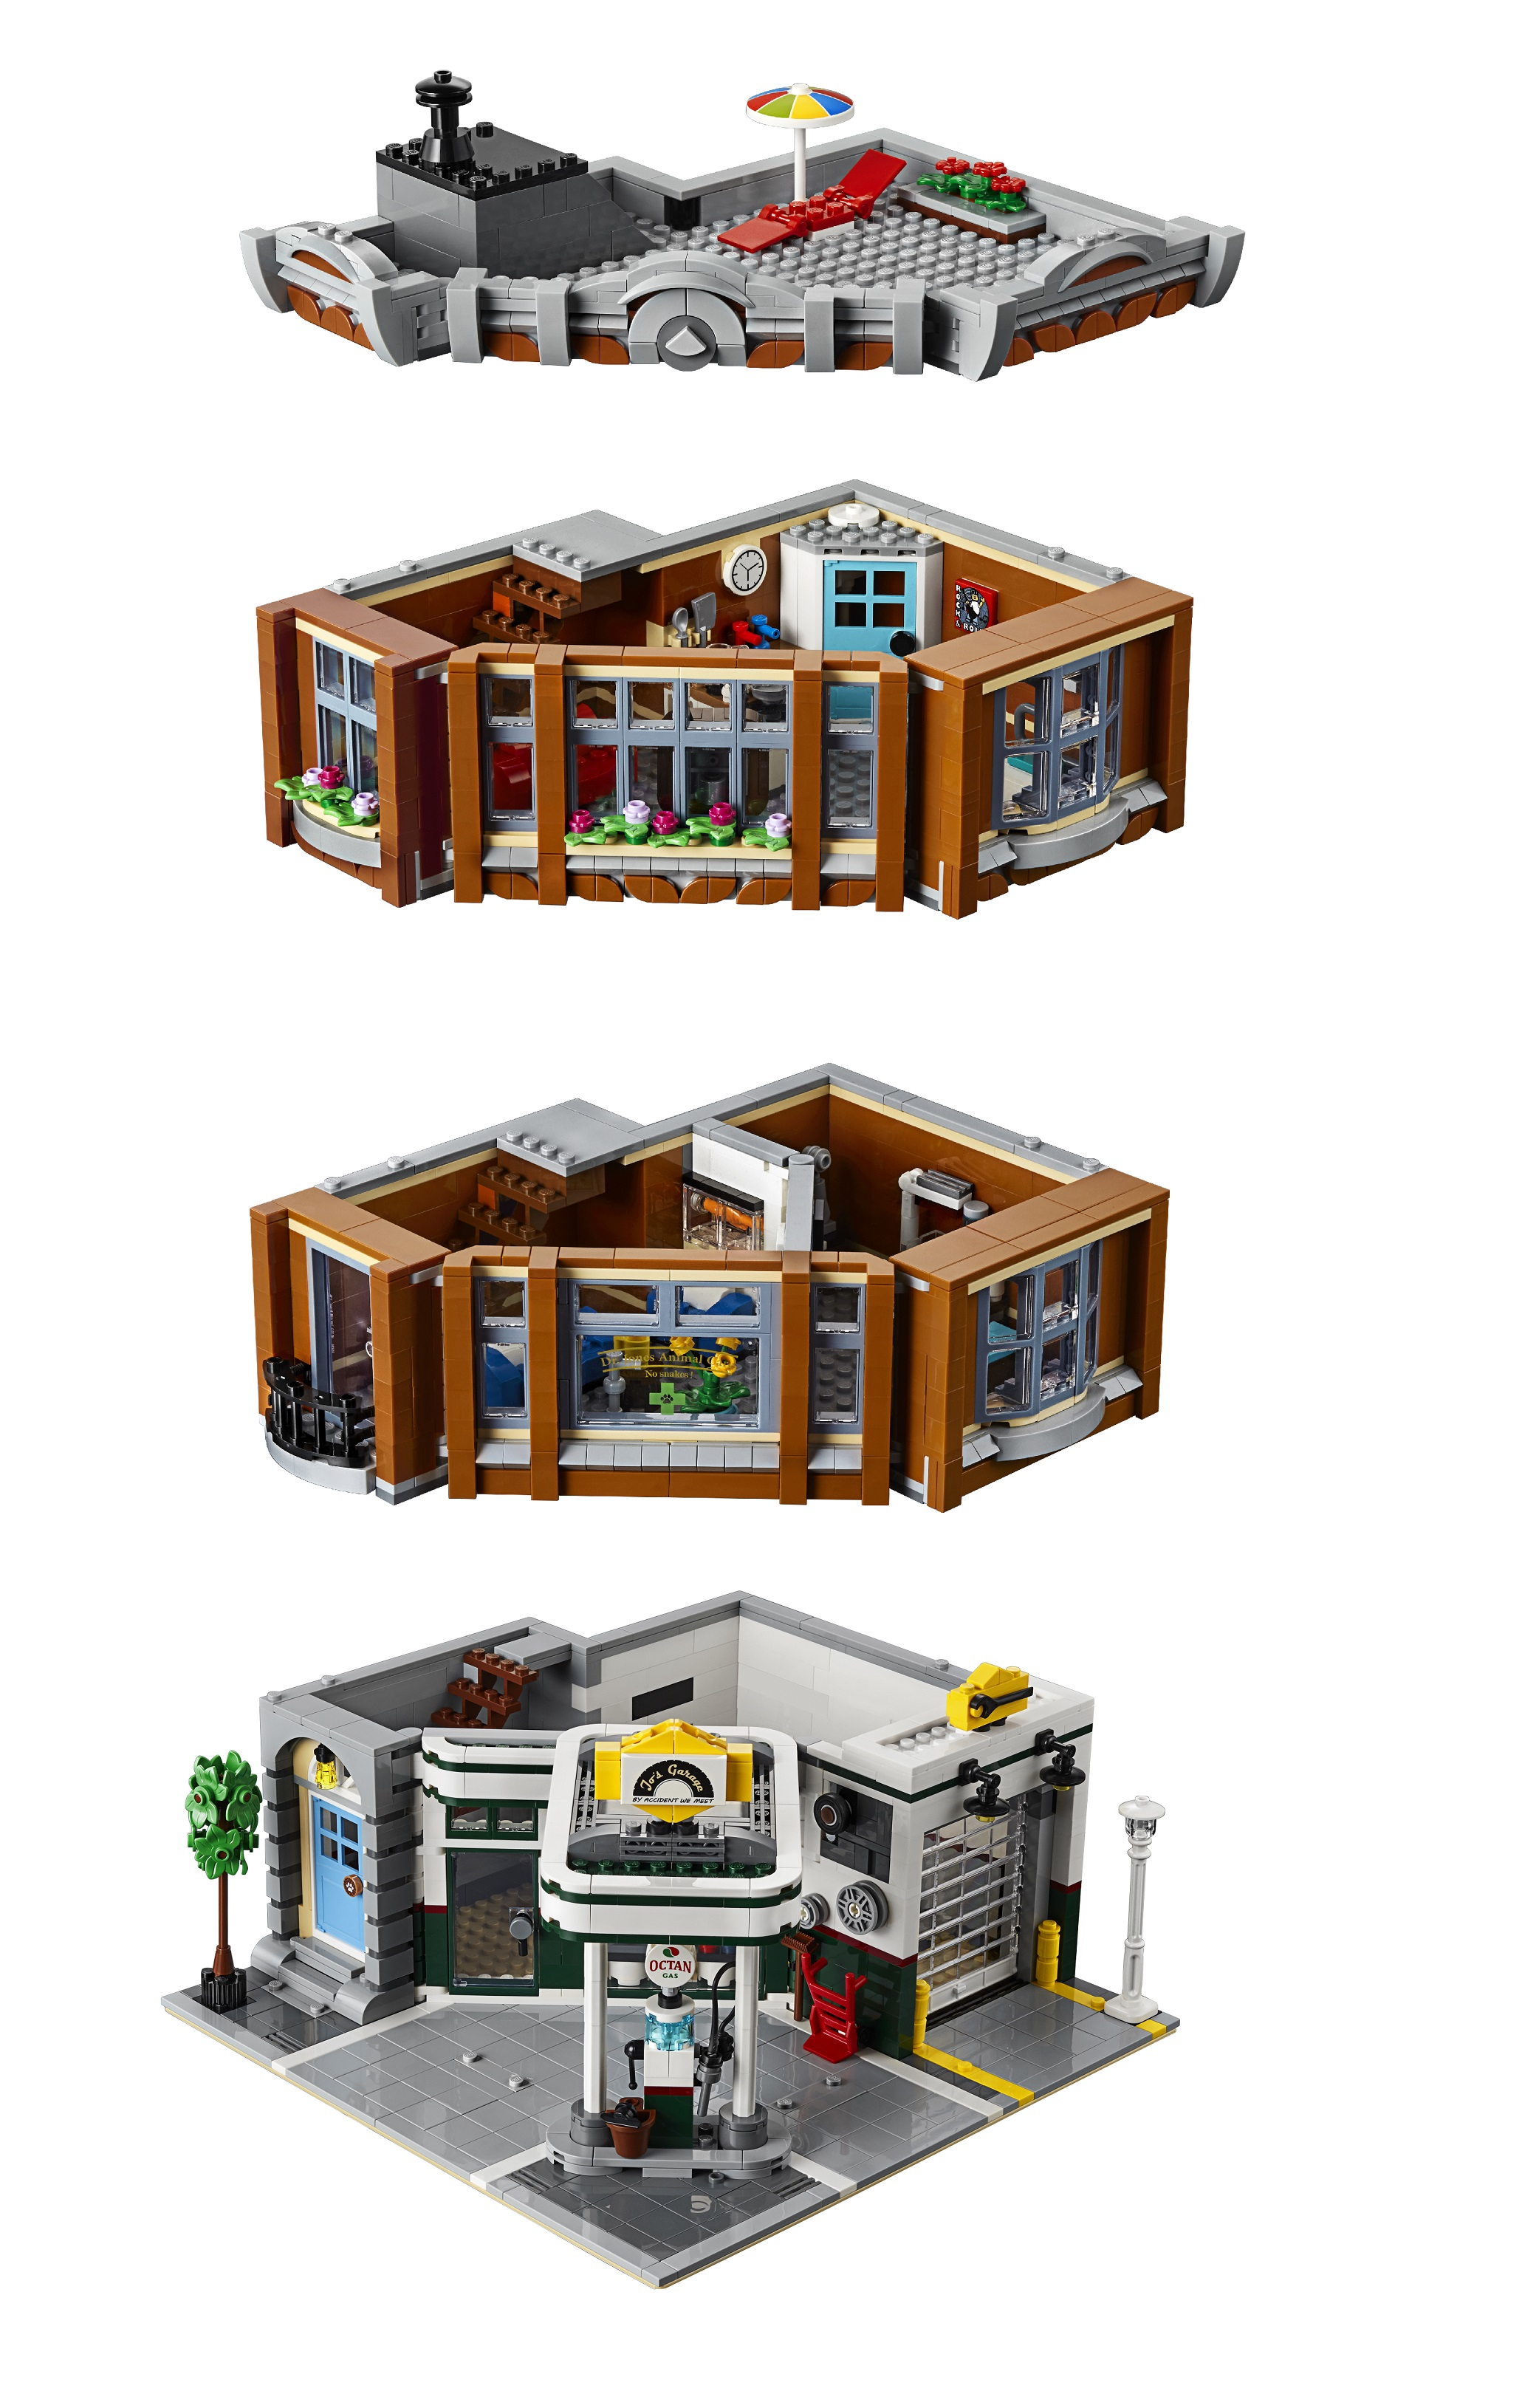 Presenting 10264 Corner Garage The 2019 Lego Modular Building